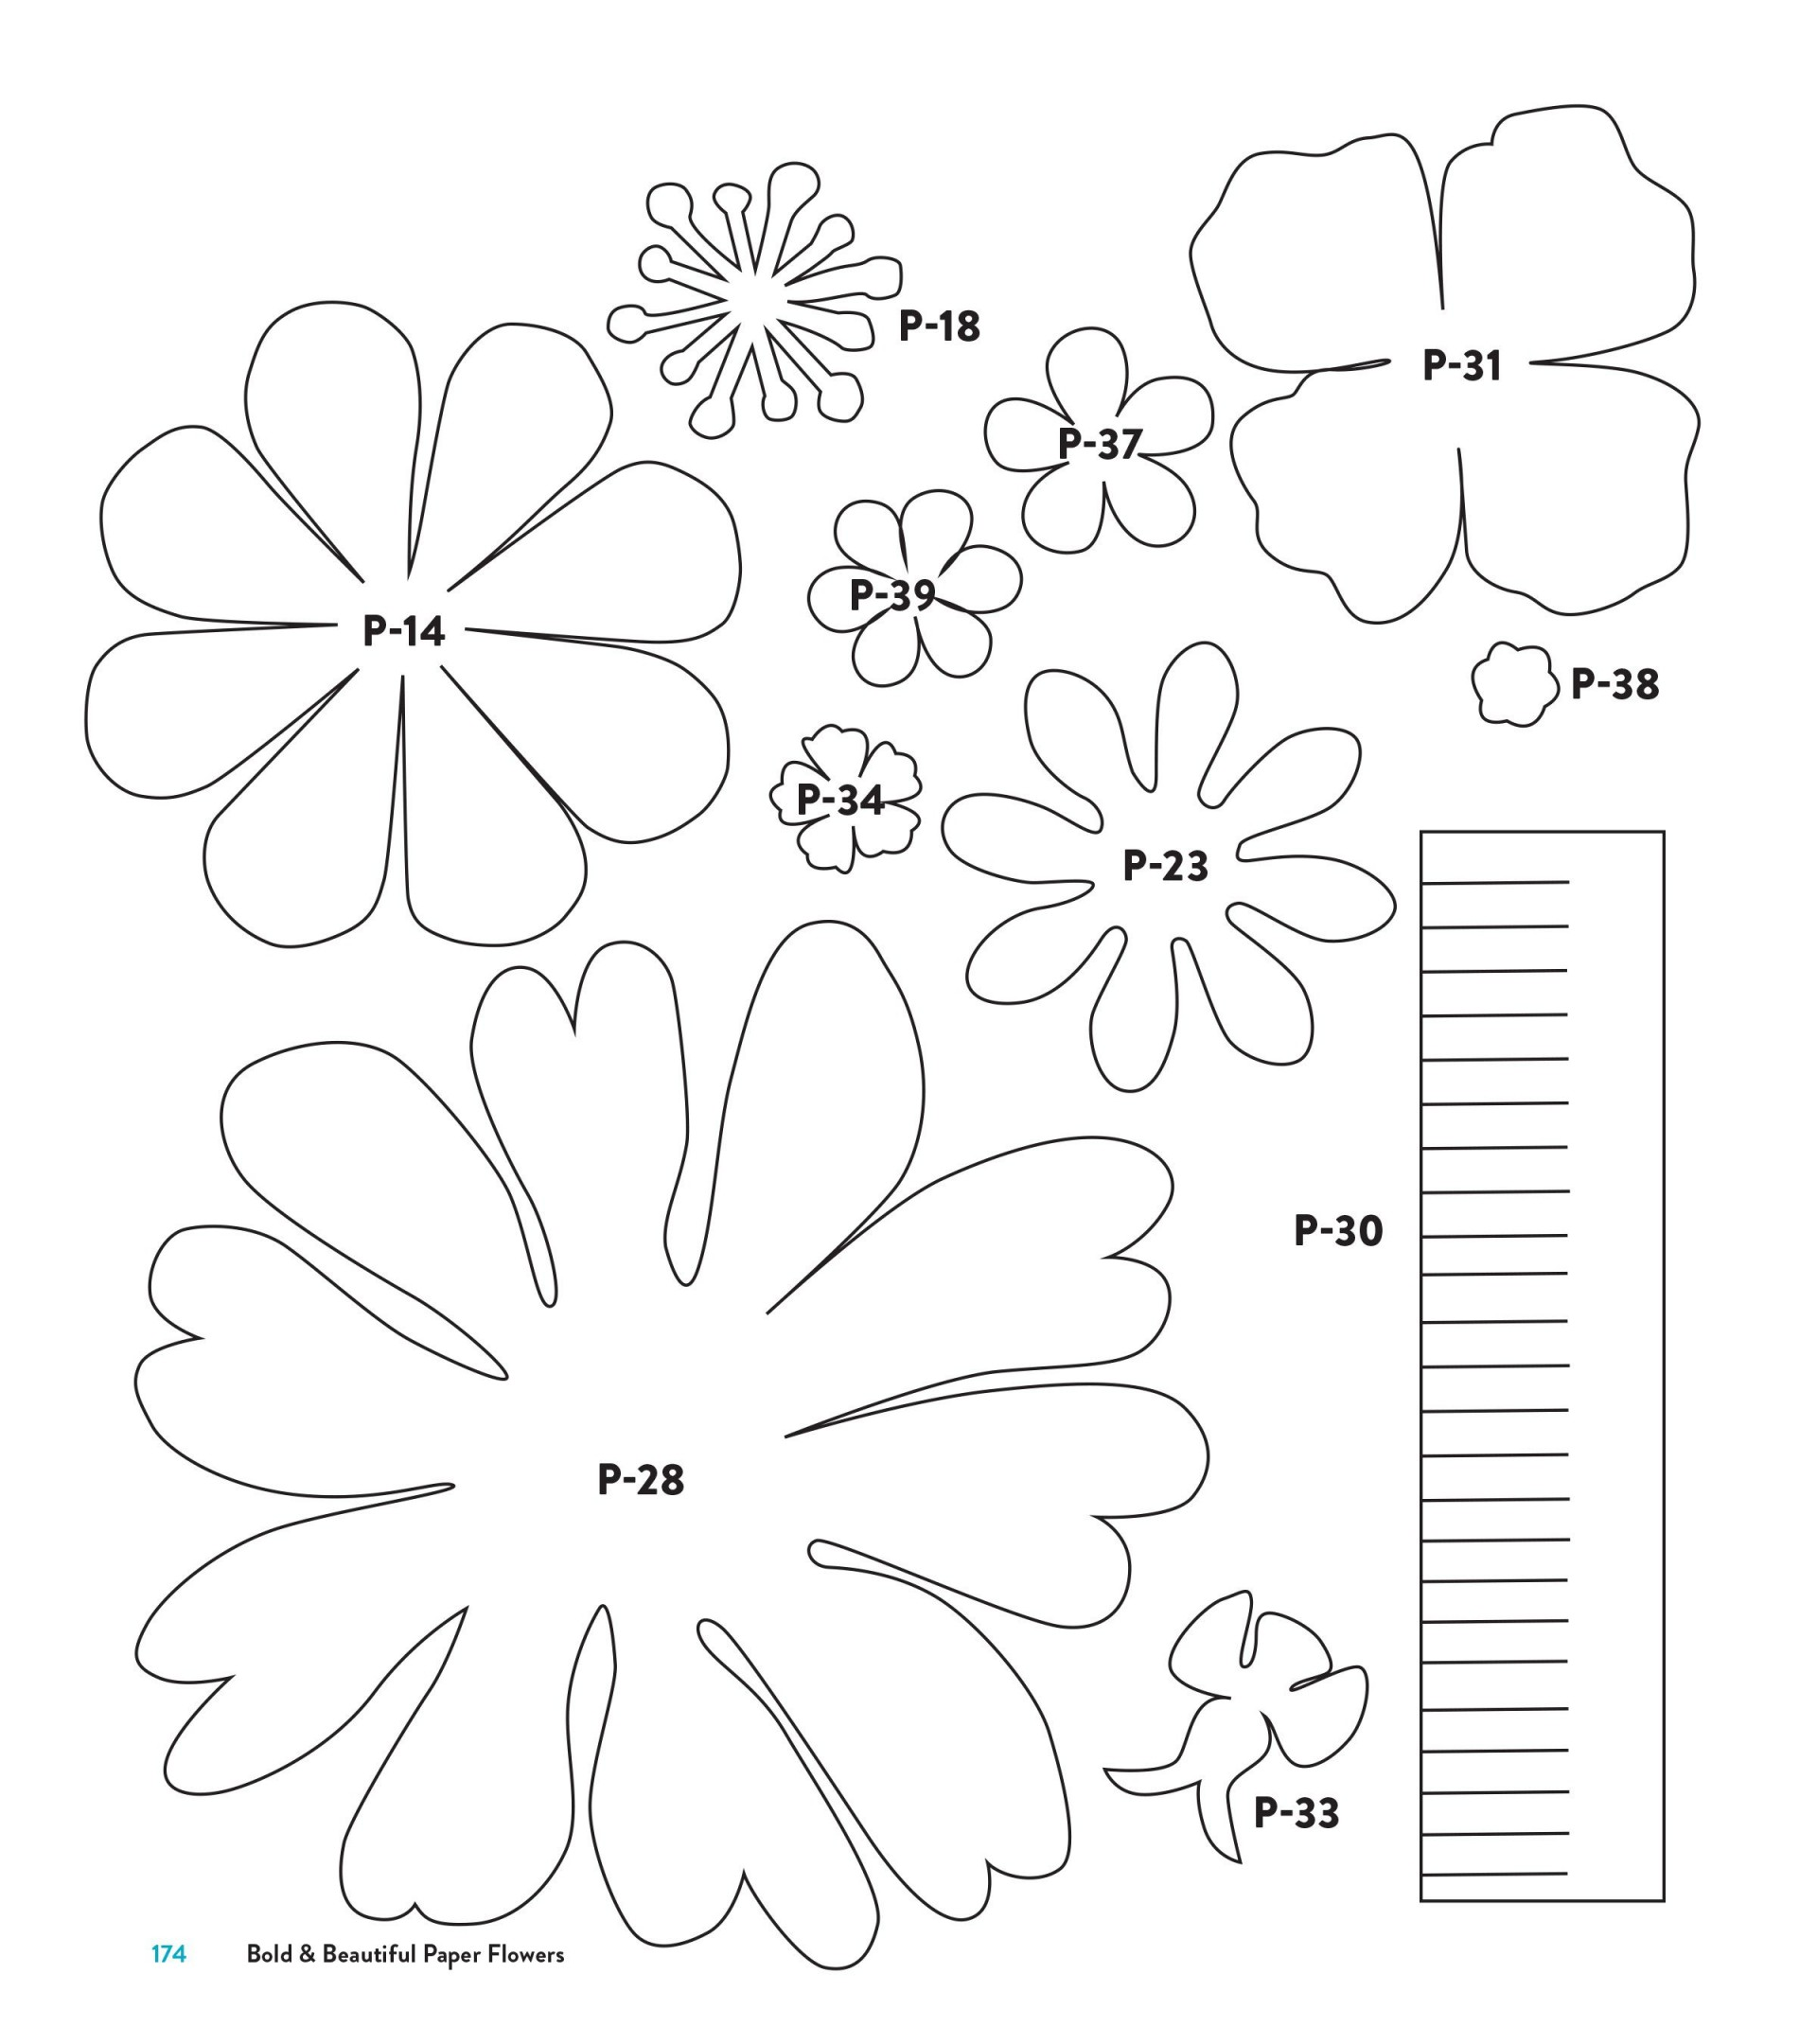 003 Staggering Downloadable Free Printable Paper Flower Template Picture  Templates1920